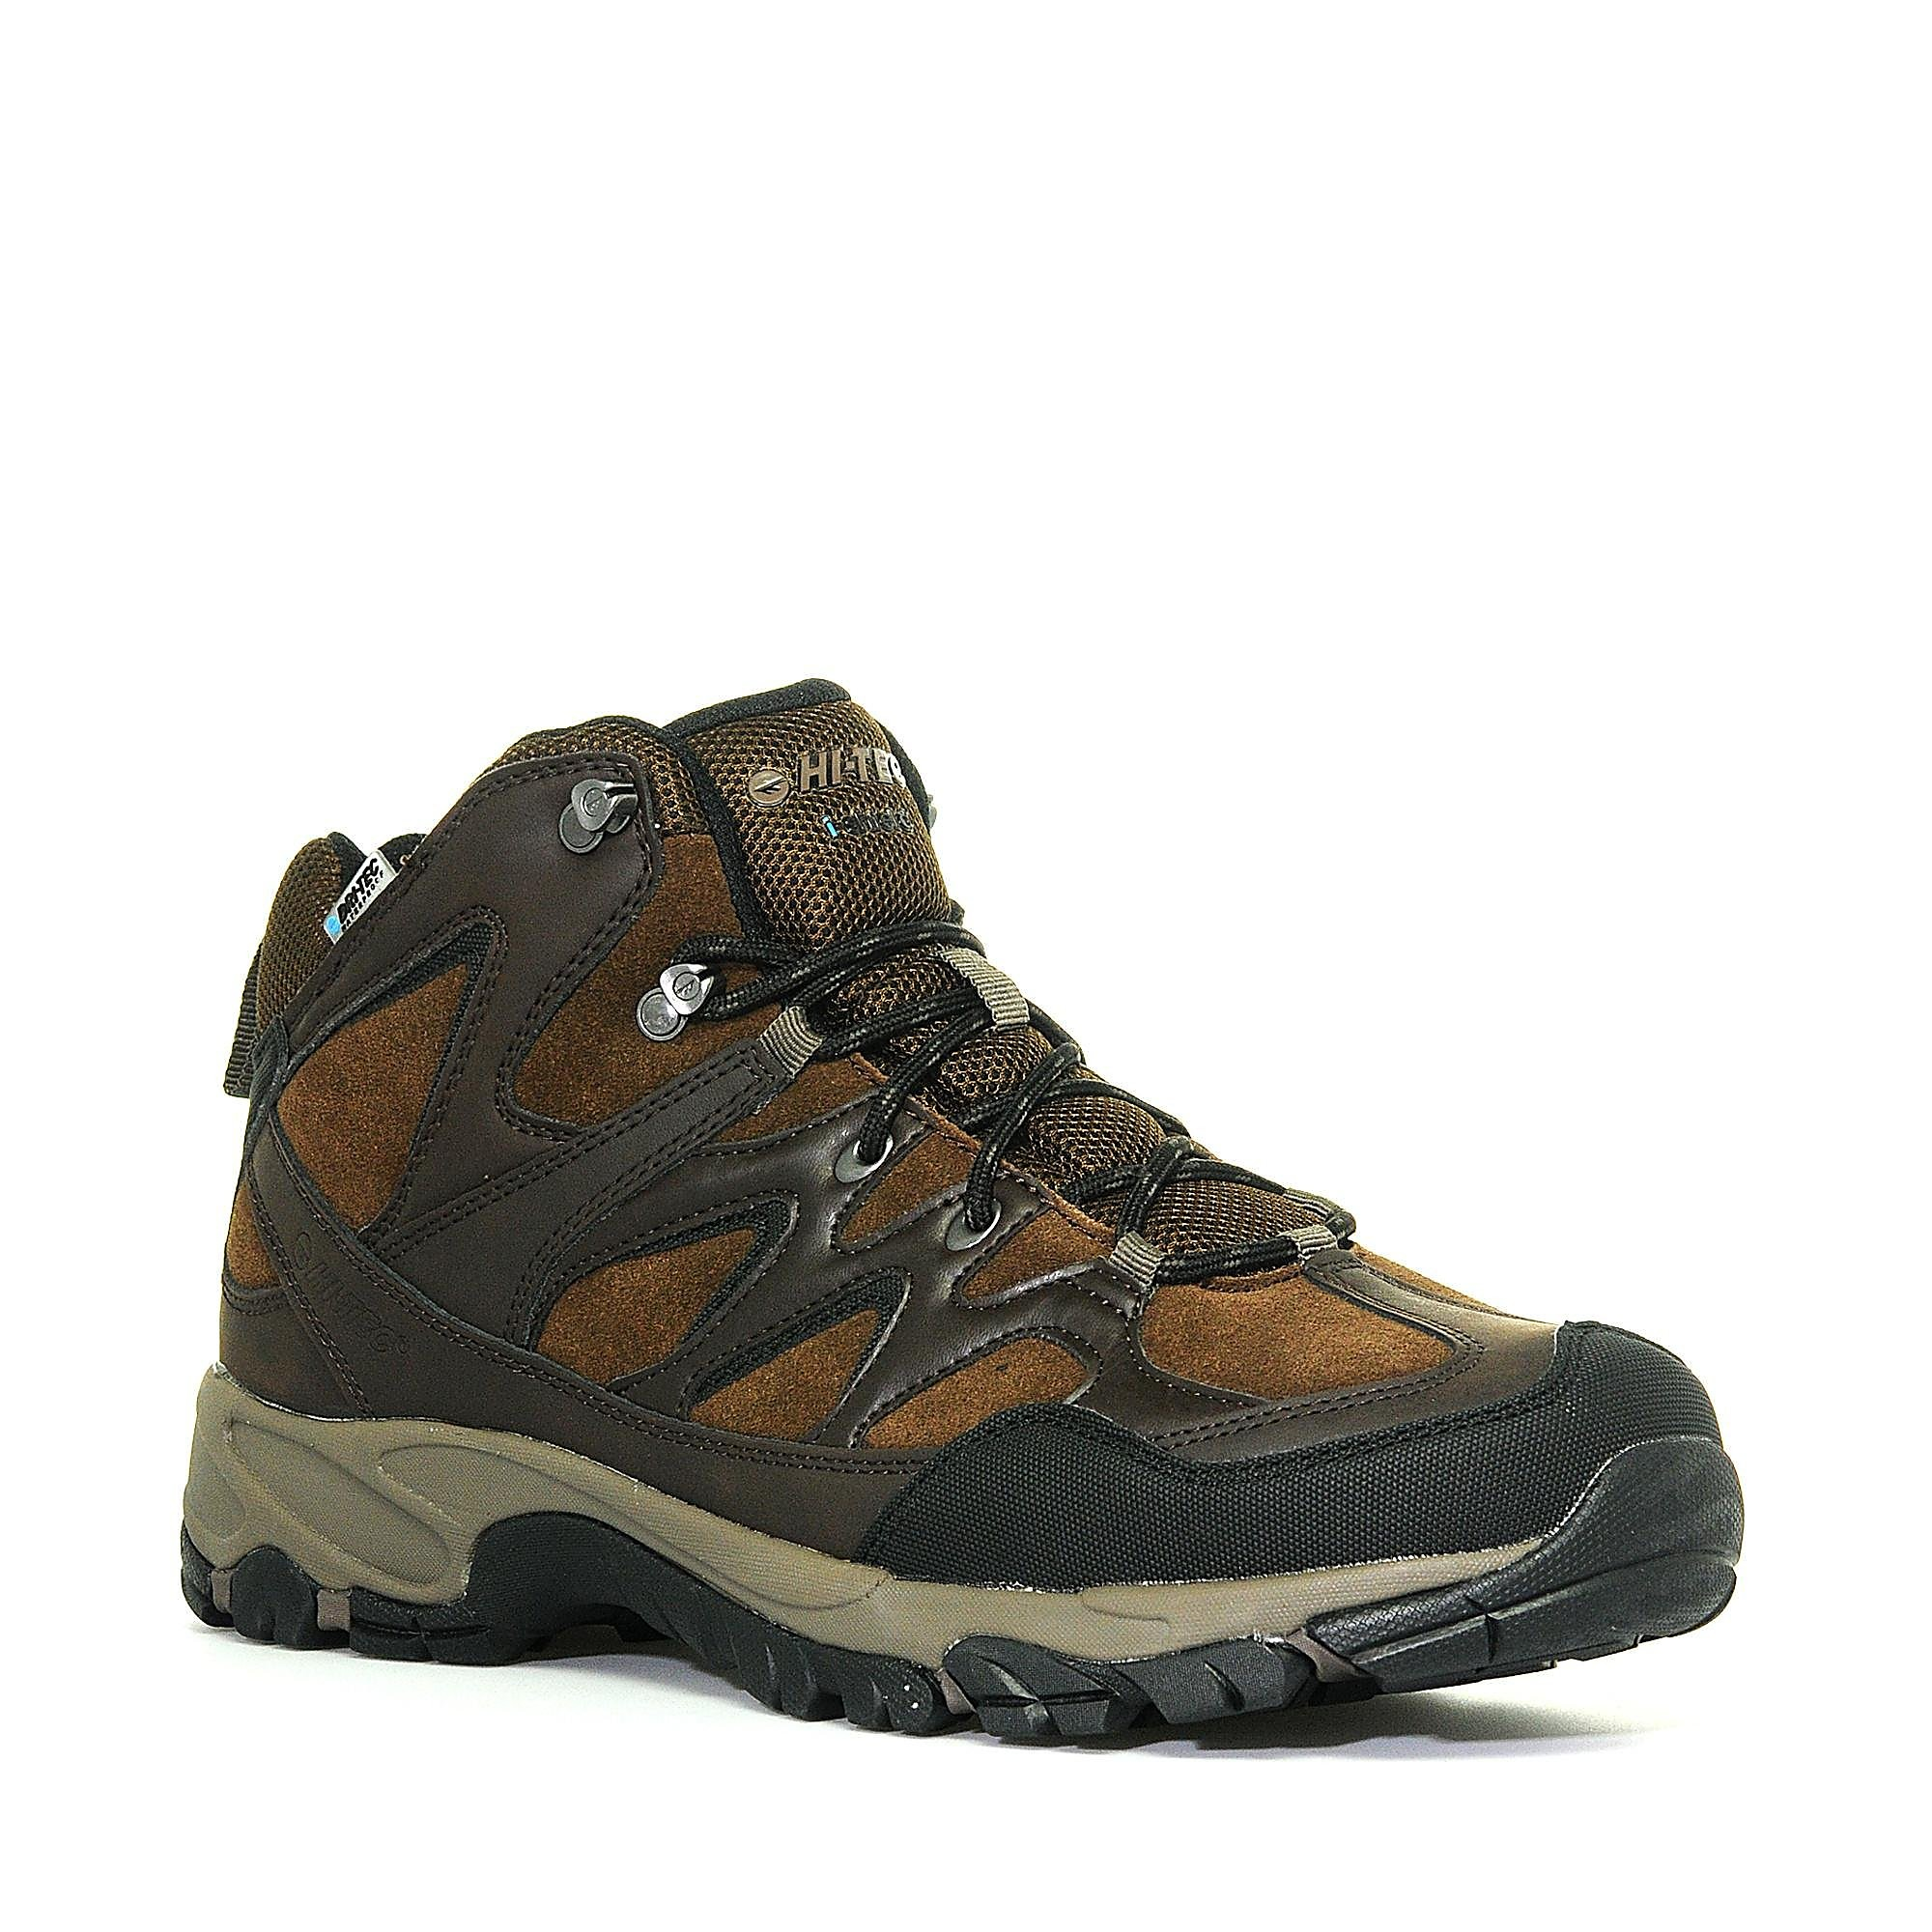 Hi Tec Men's Altitude Trek Mid Walking Boot